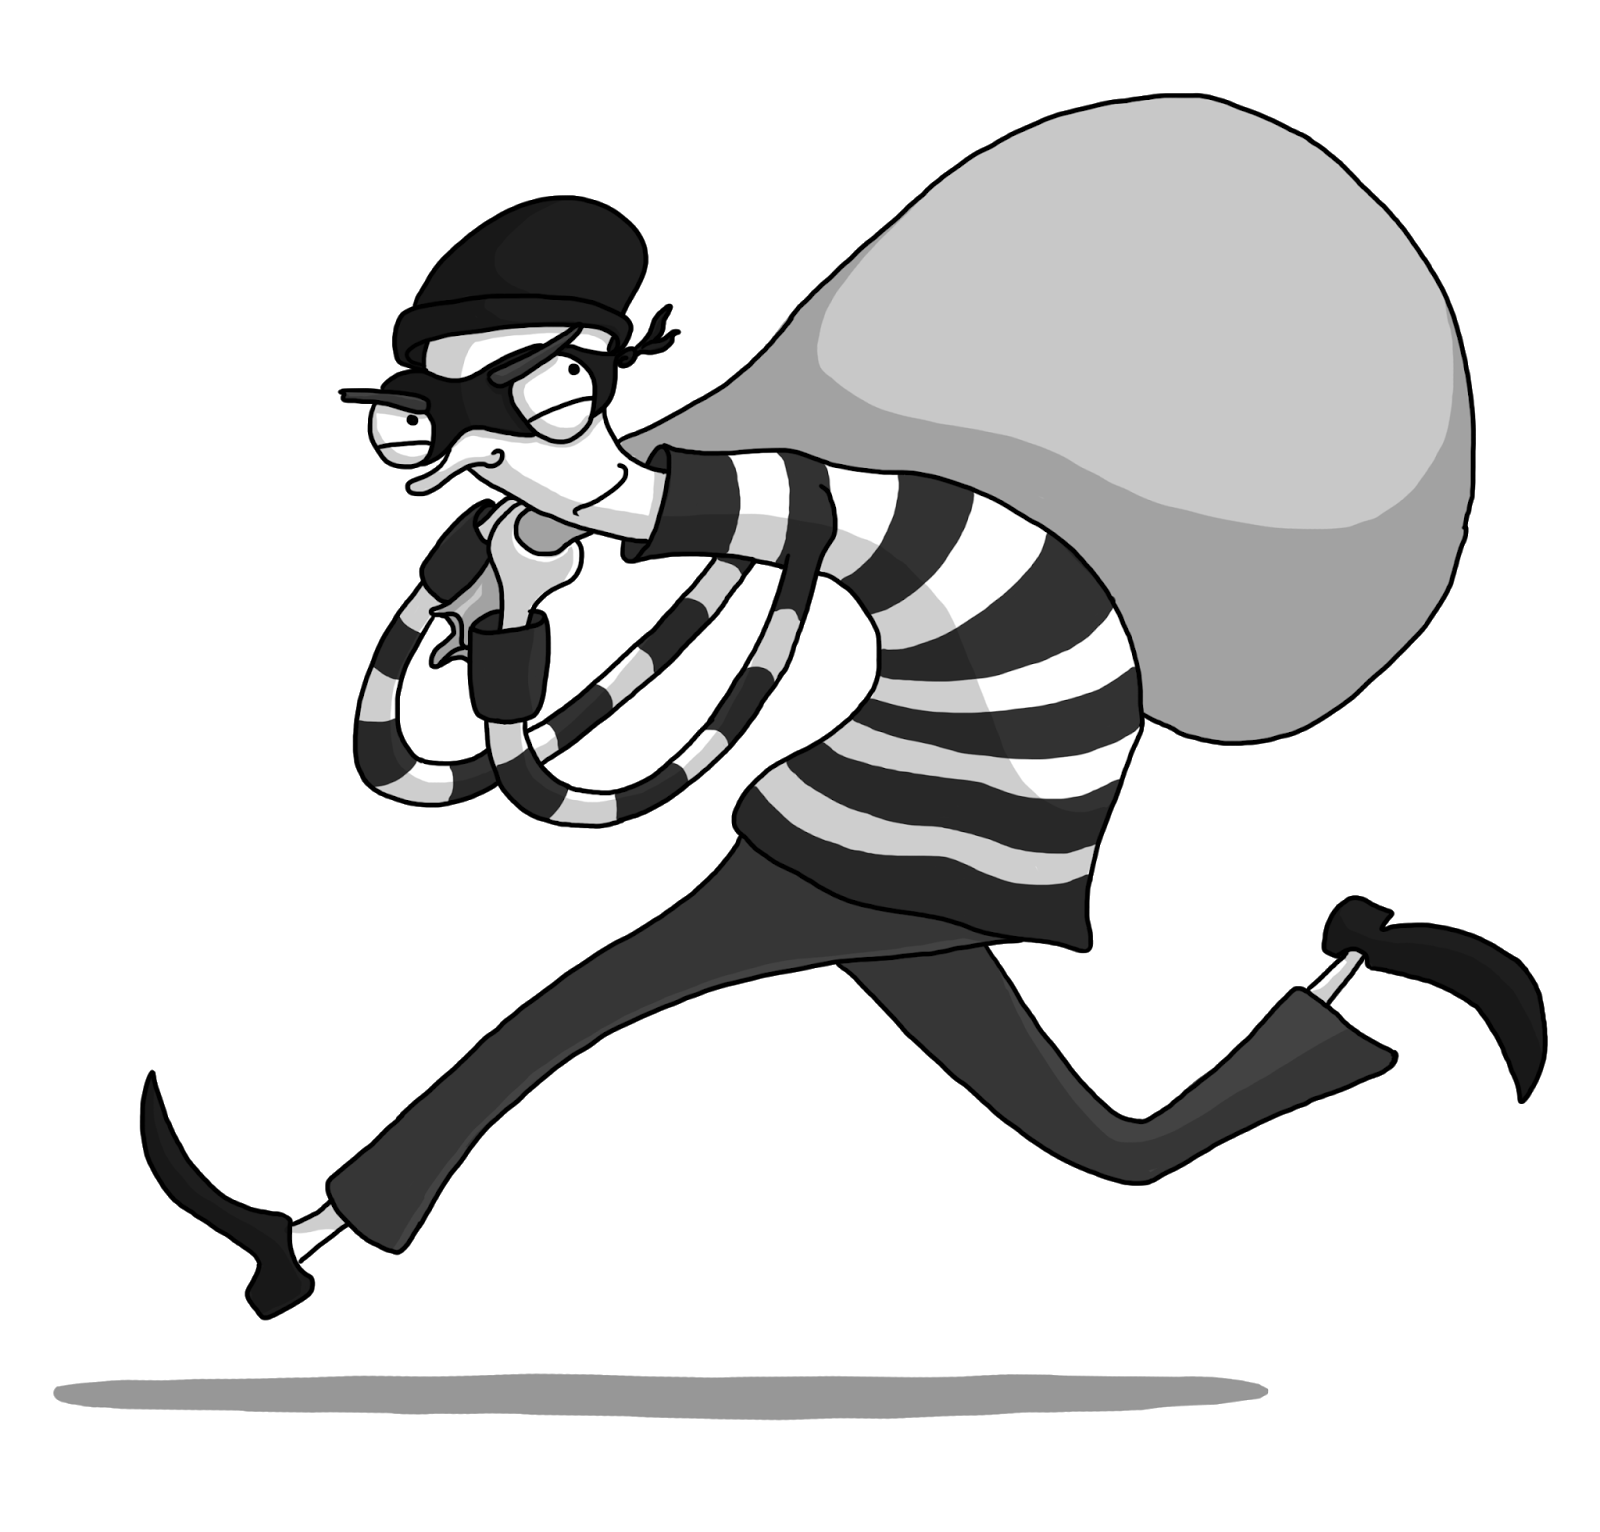 Png Robber Download Icon image #5011